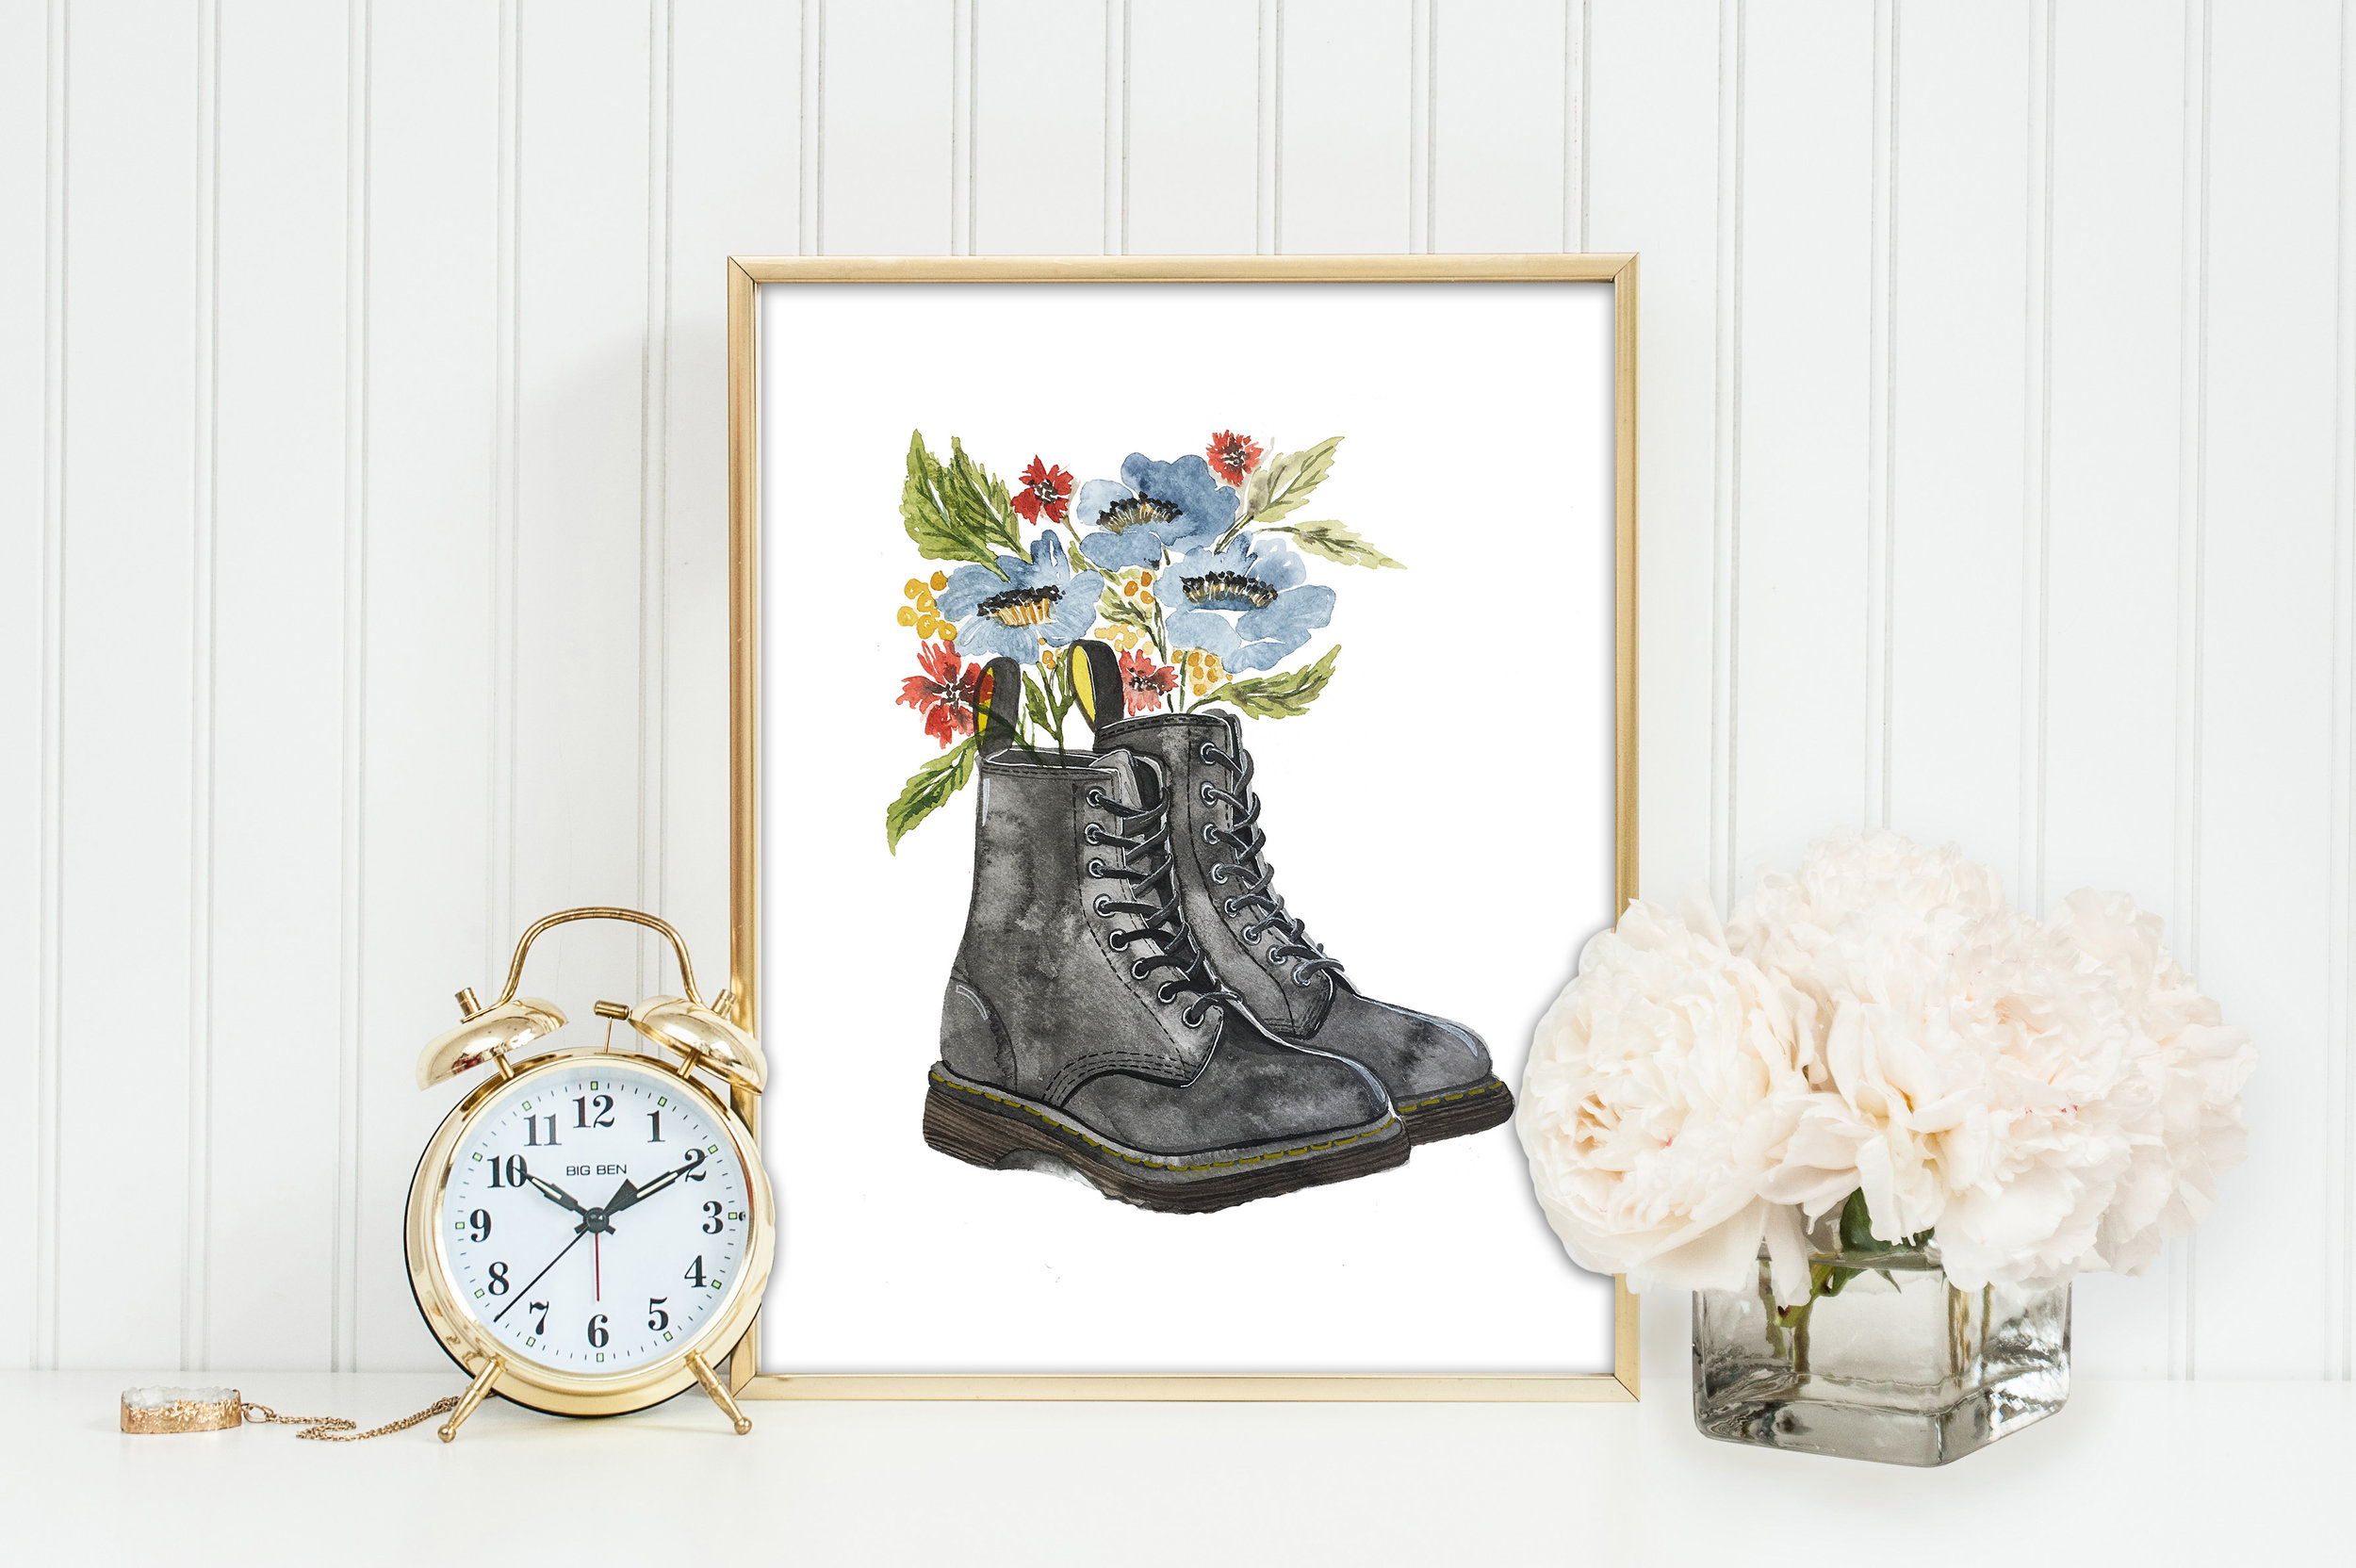 The Shoe Collection - Dr Martens, Converse, Cowboy Boots, Ducks Boots, Hunter Rain Boots, and More!